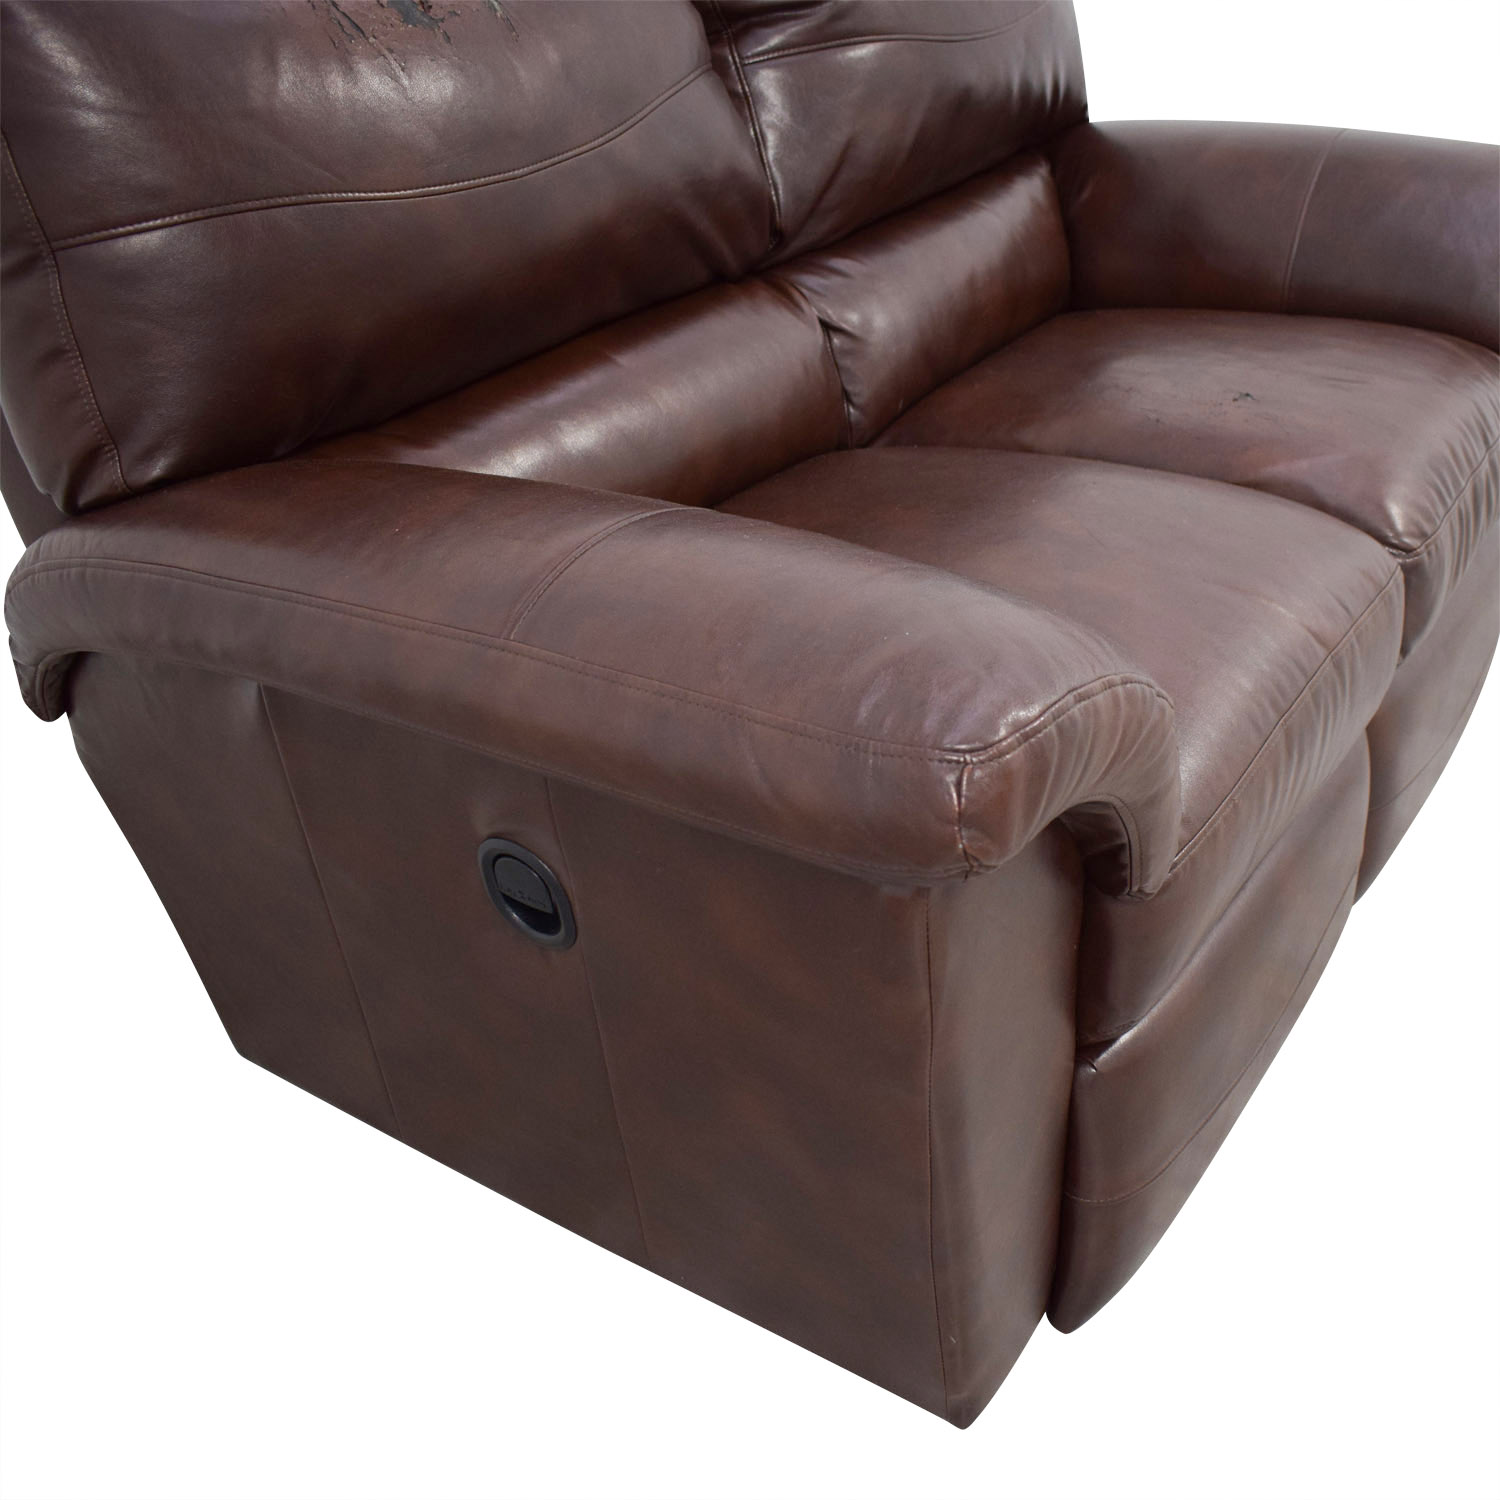 La-Z-Boy La-Z-Boy Oscar Reclining Loveseat used